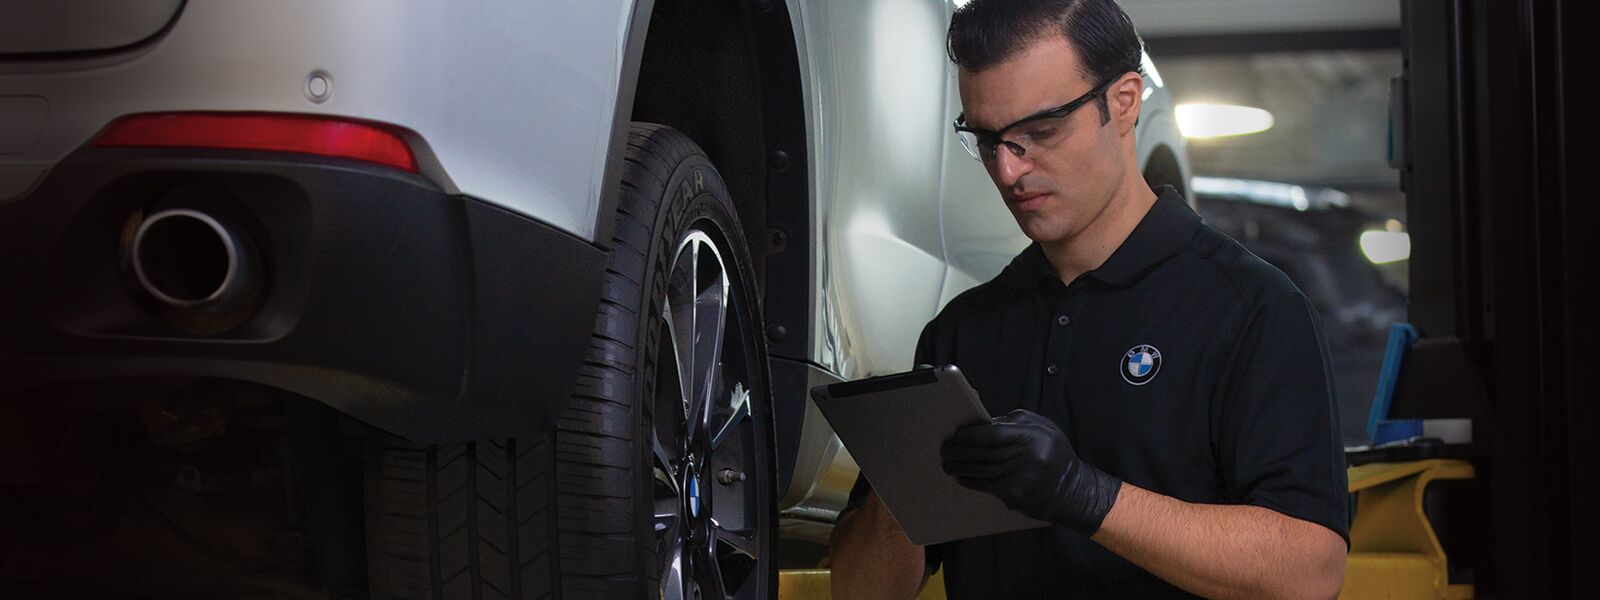 BMW Service Technician in service bay inspecting a BMW on a lift.